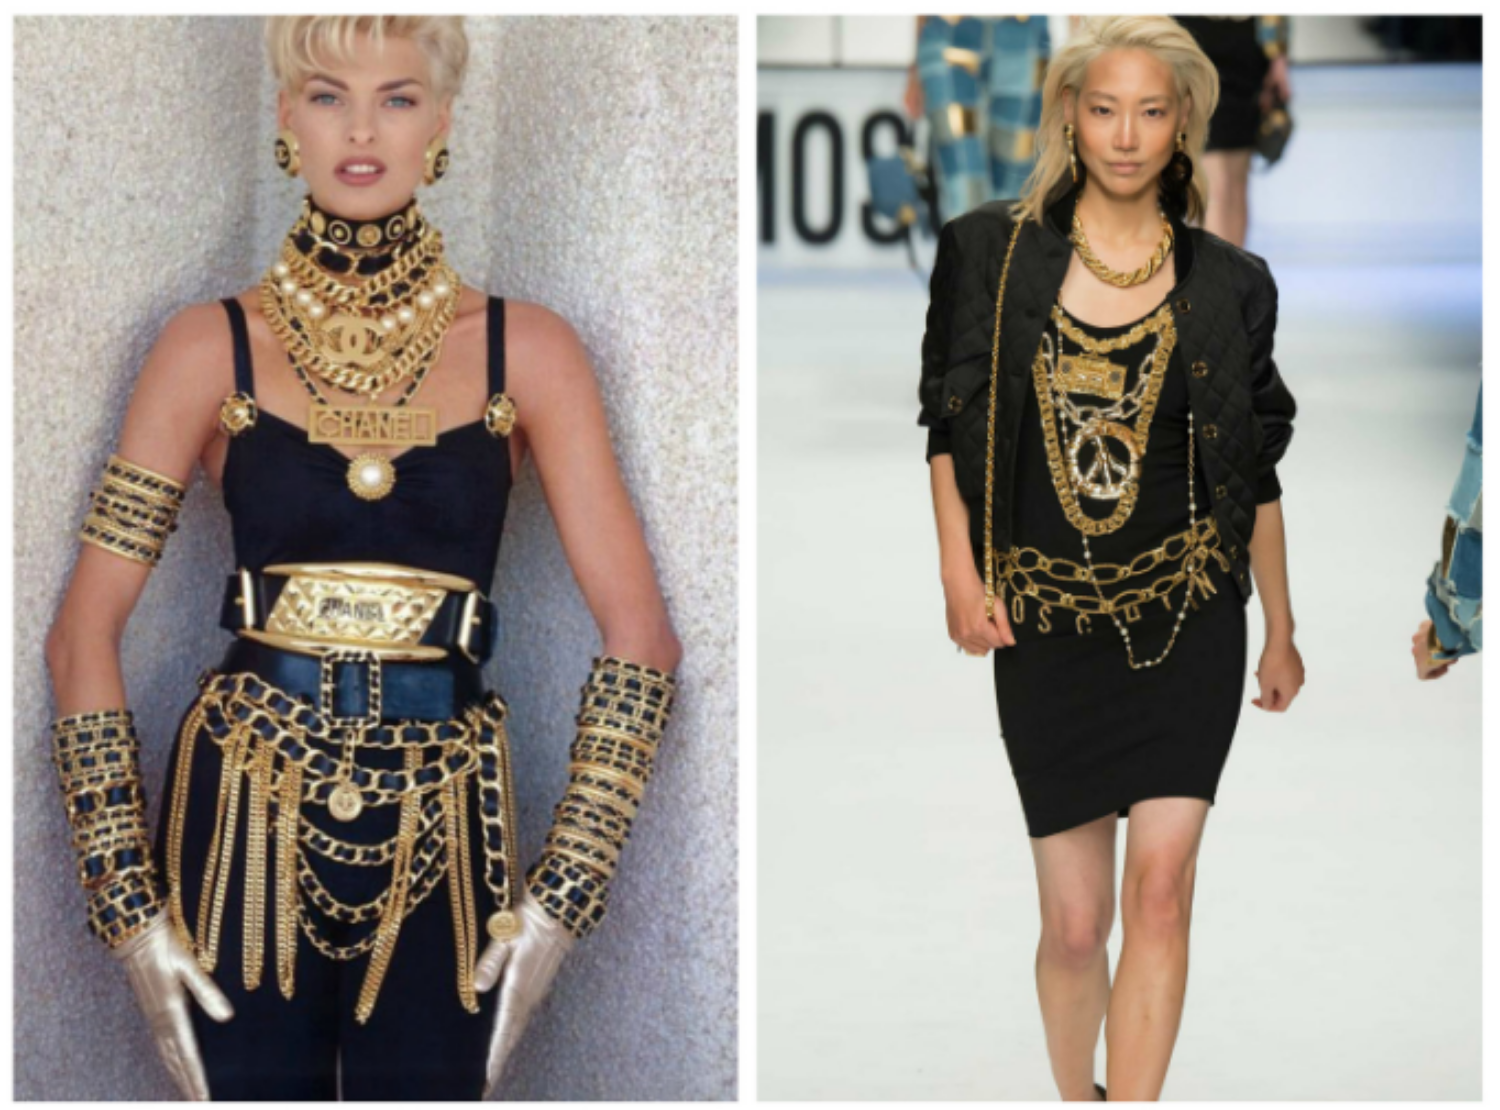 From left to right: Linda Evangelista wearing Chanel in 1990, and the Moschino collection at Milan Fashion Week, Fall 2015.